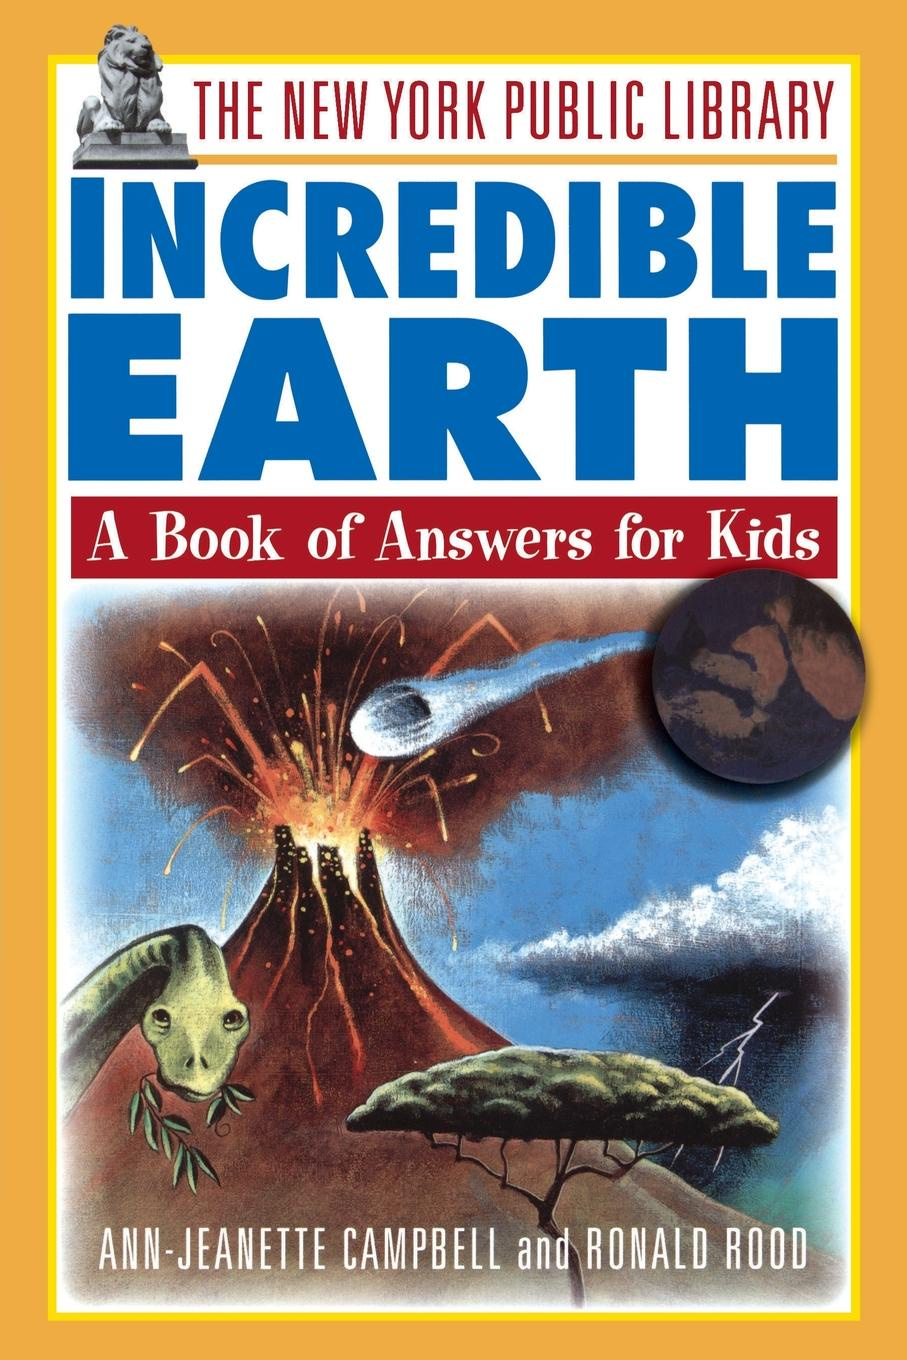 Ann-Jeanette Campbell, New York Public Library, Nypl The New York Public Library Incredible Earth. A Book of Answers for Kids andrea sutcliffe the new york public library amazing u s geography a book of answers for kids